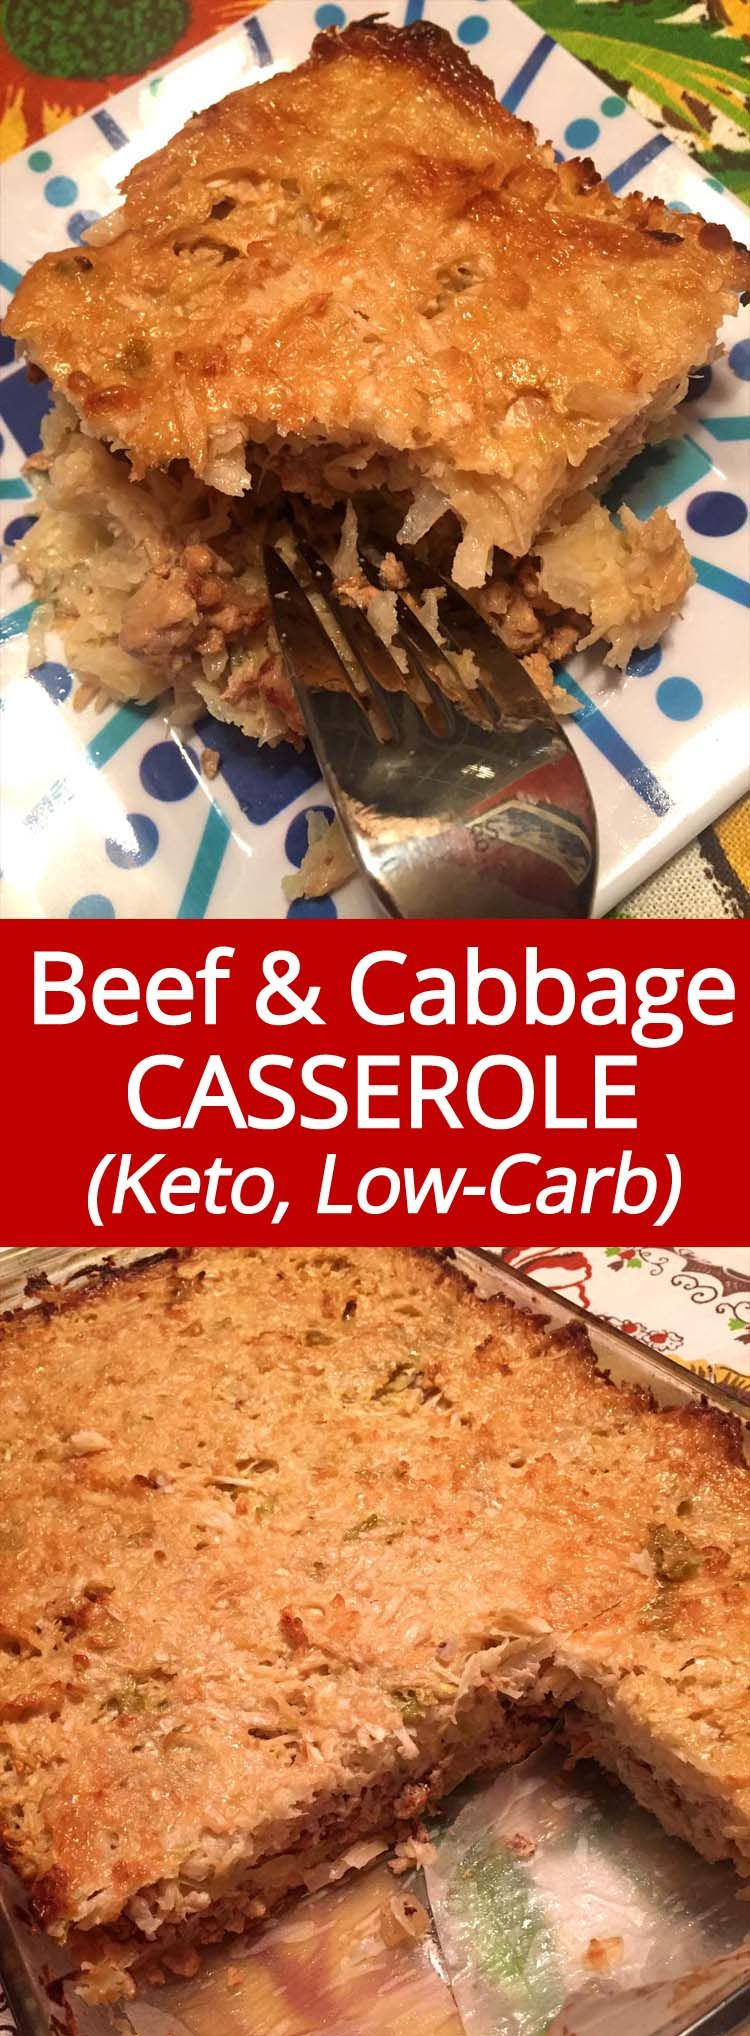 Ground Beef And Cabbage Casserole Without Tomato Sauce Recipe Cabbage Casserole Ground Beef And Cabbage Recipes